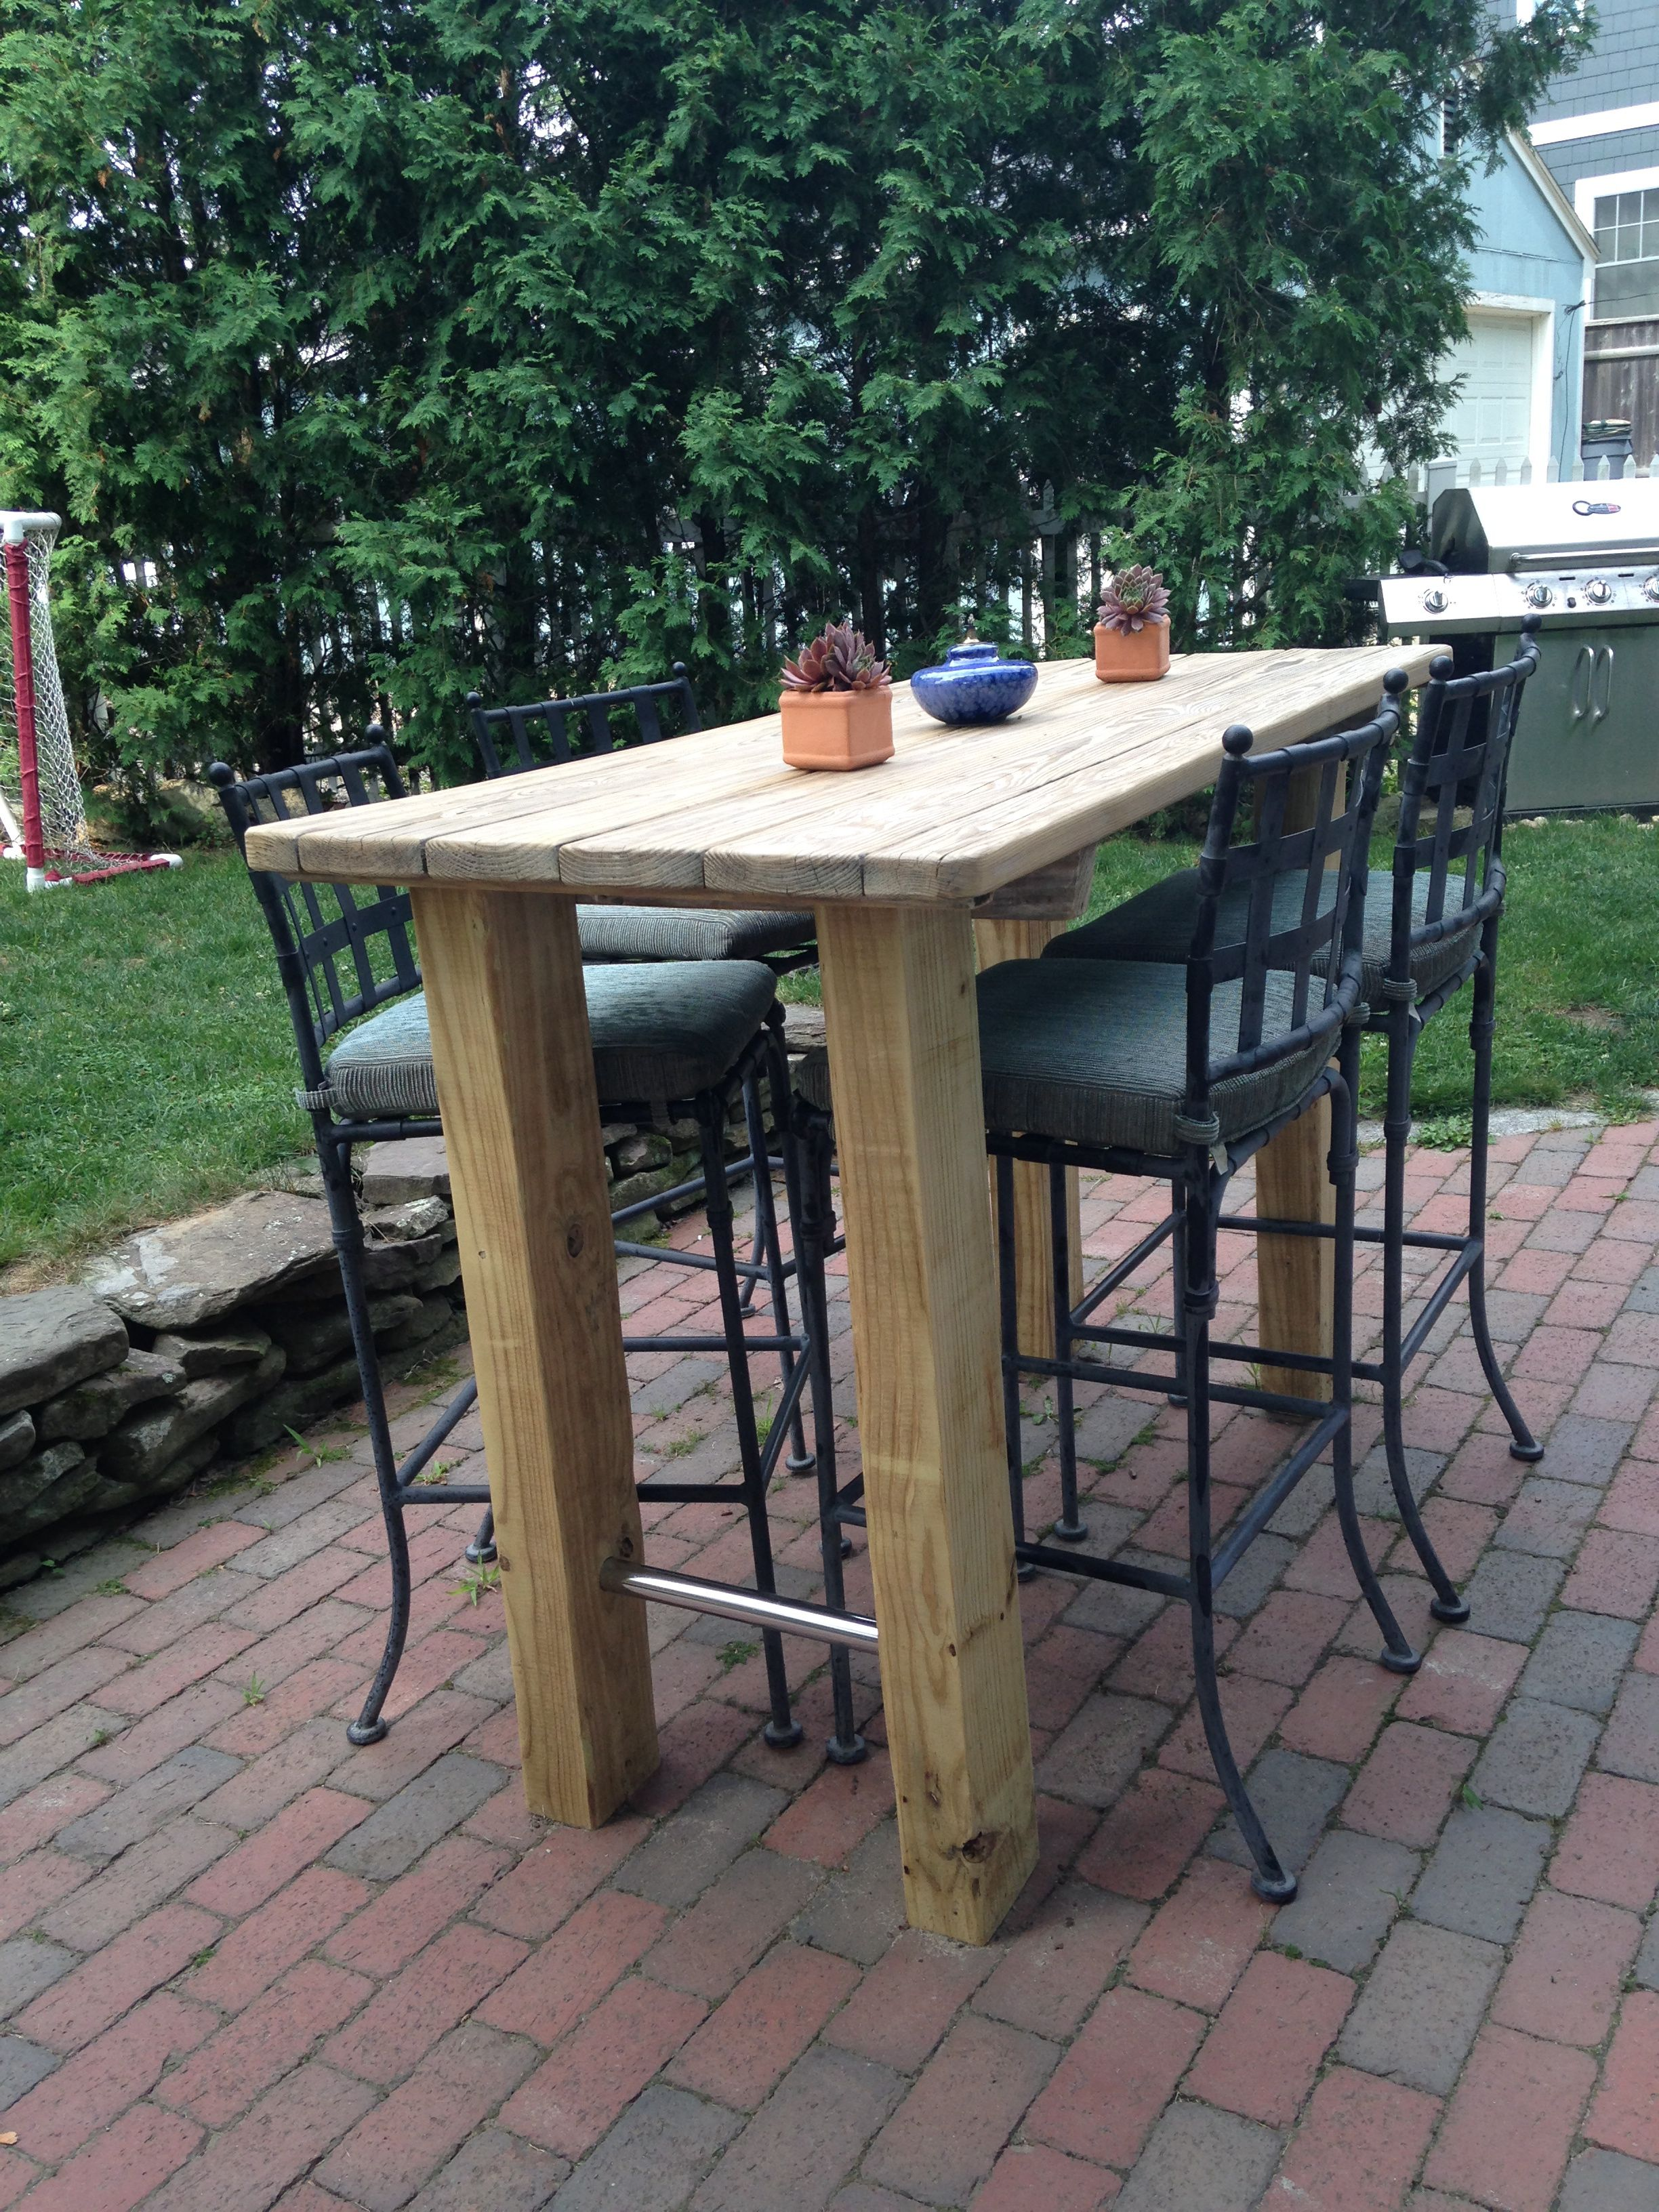 Great We Wanted A Bar Height Table, So Found An Old Picnic Table, Refinished It